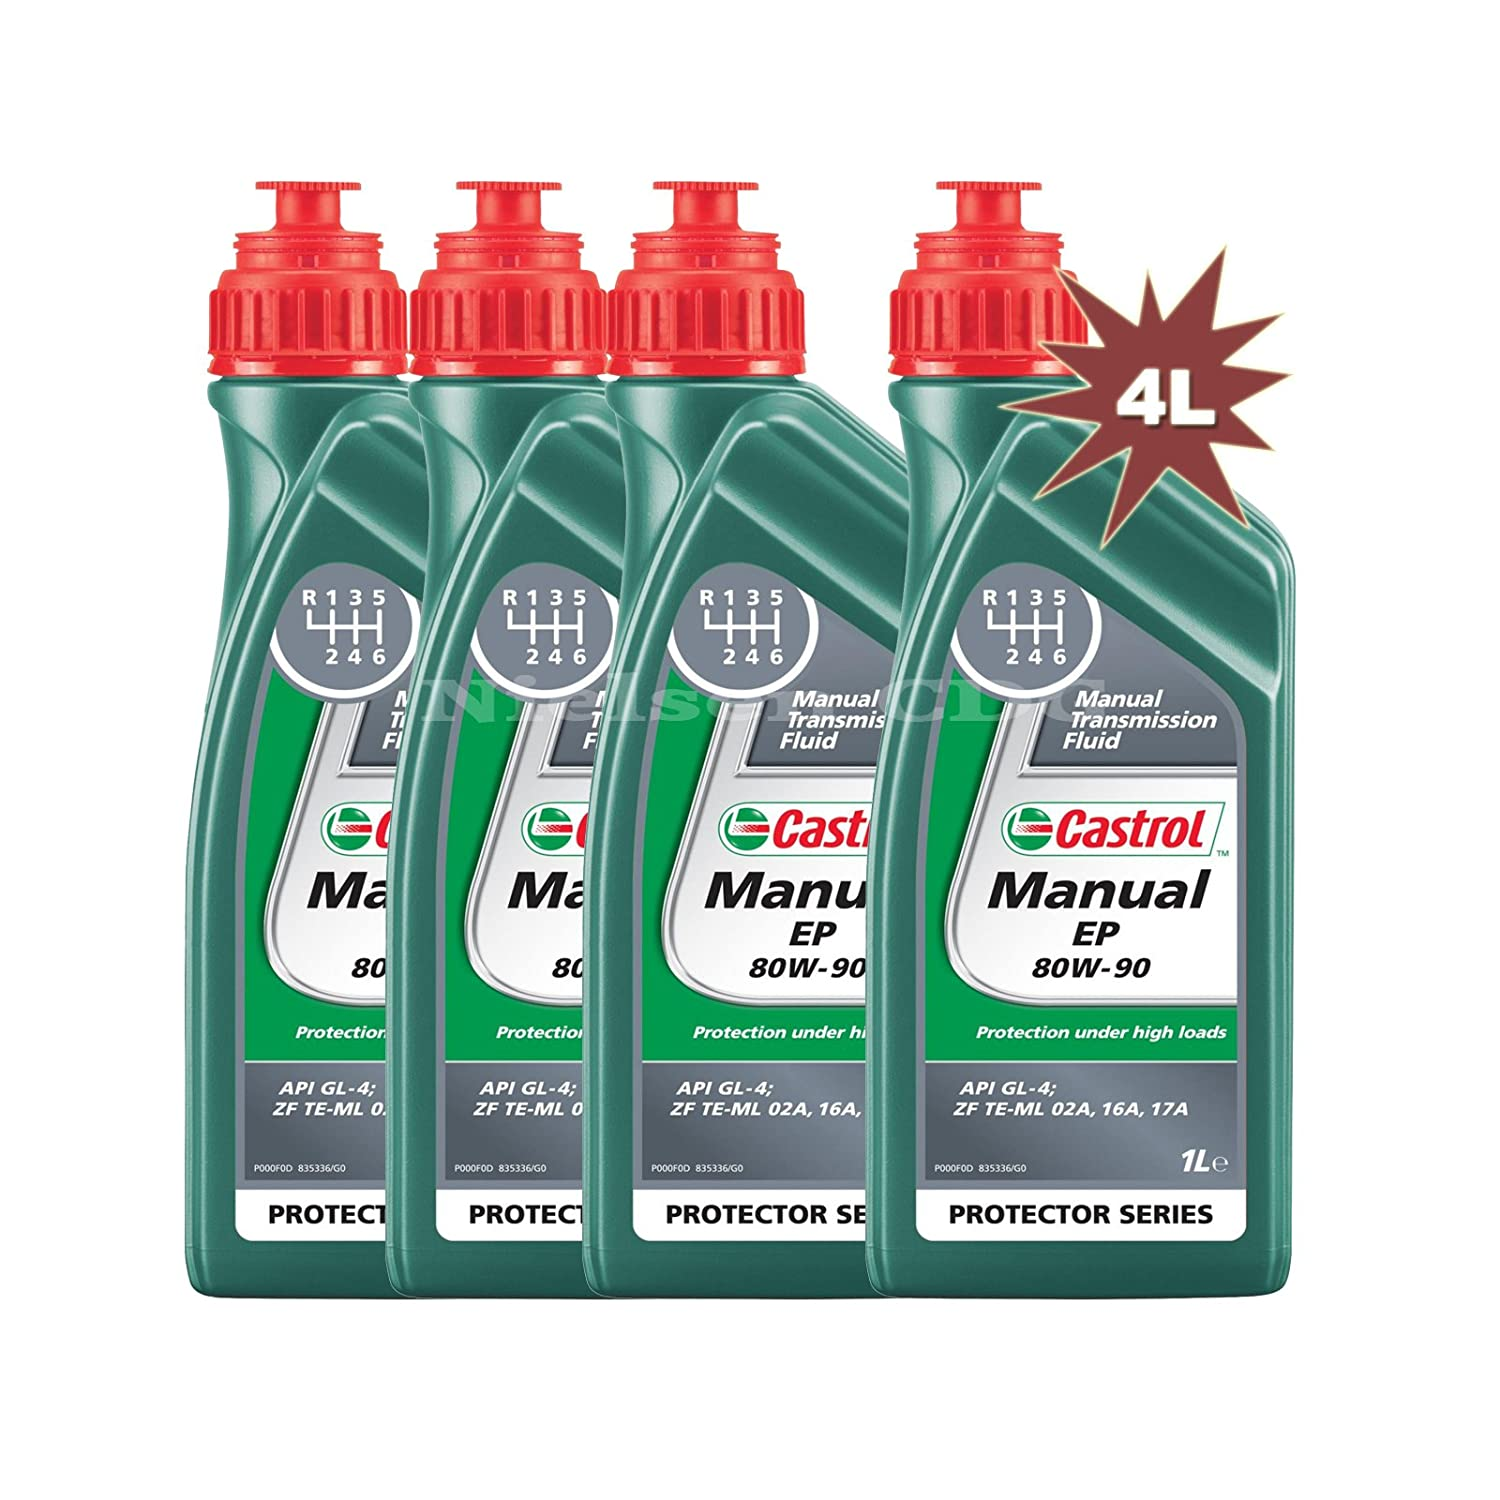 Castrol Manual EP 80w-90 - Gear Oil CAS-1896-7160, 2L: 2x1L